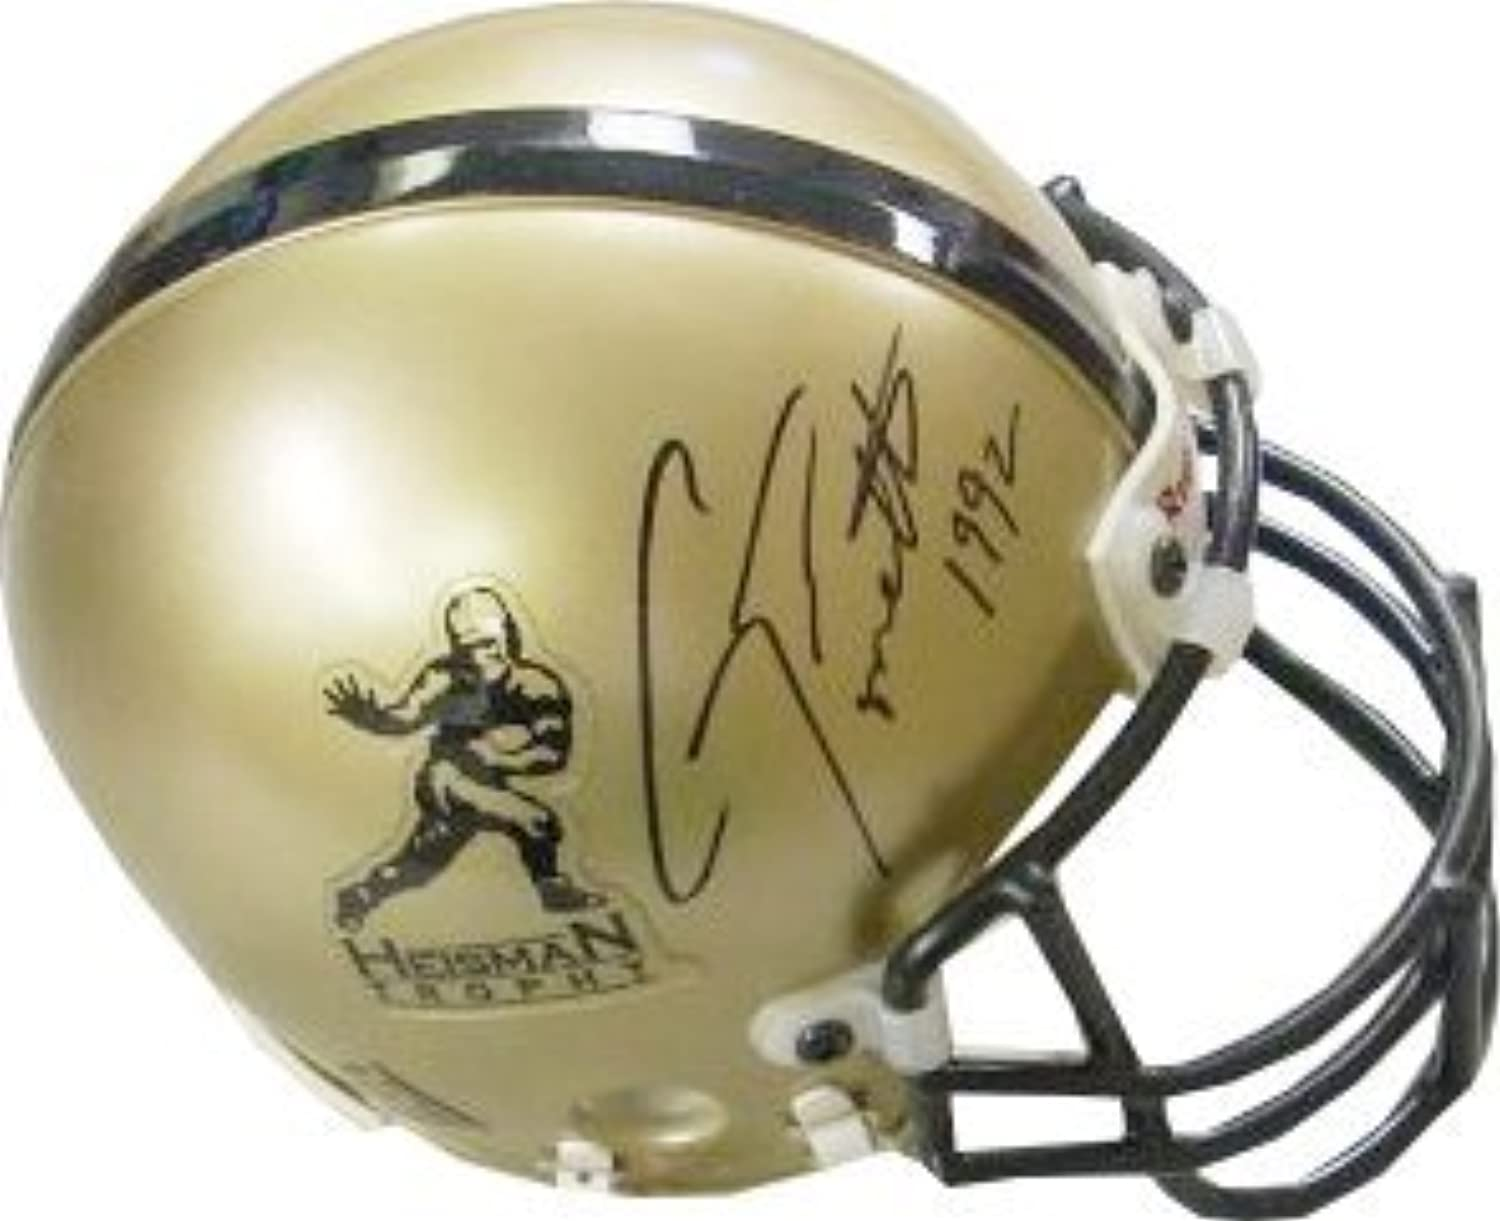 Gino Torretta signed gold Heisman Authentic Mini Helmet 1992 (Miami Hurricanes)  Autographed College Mini Helmets